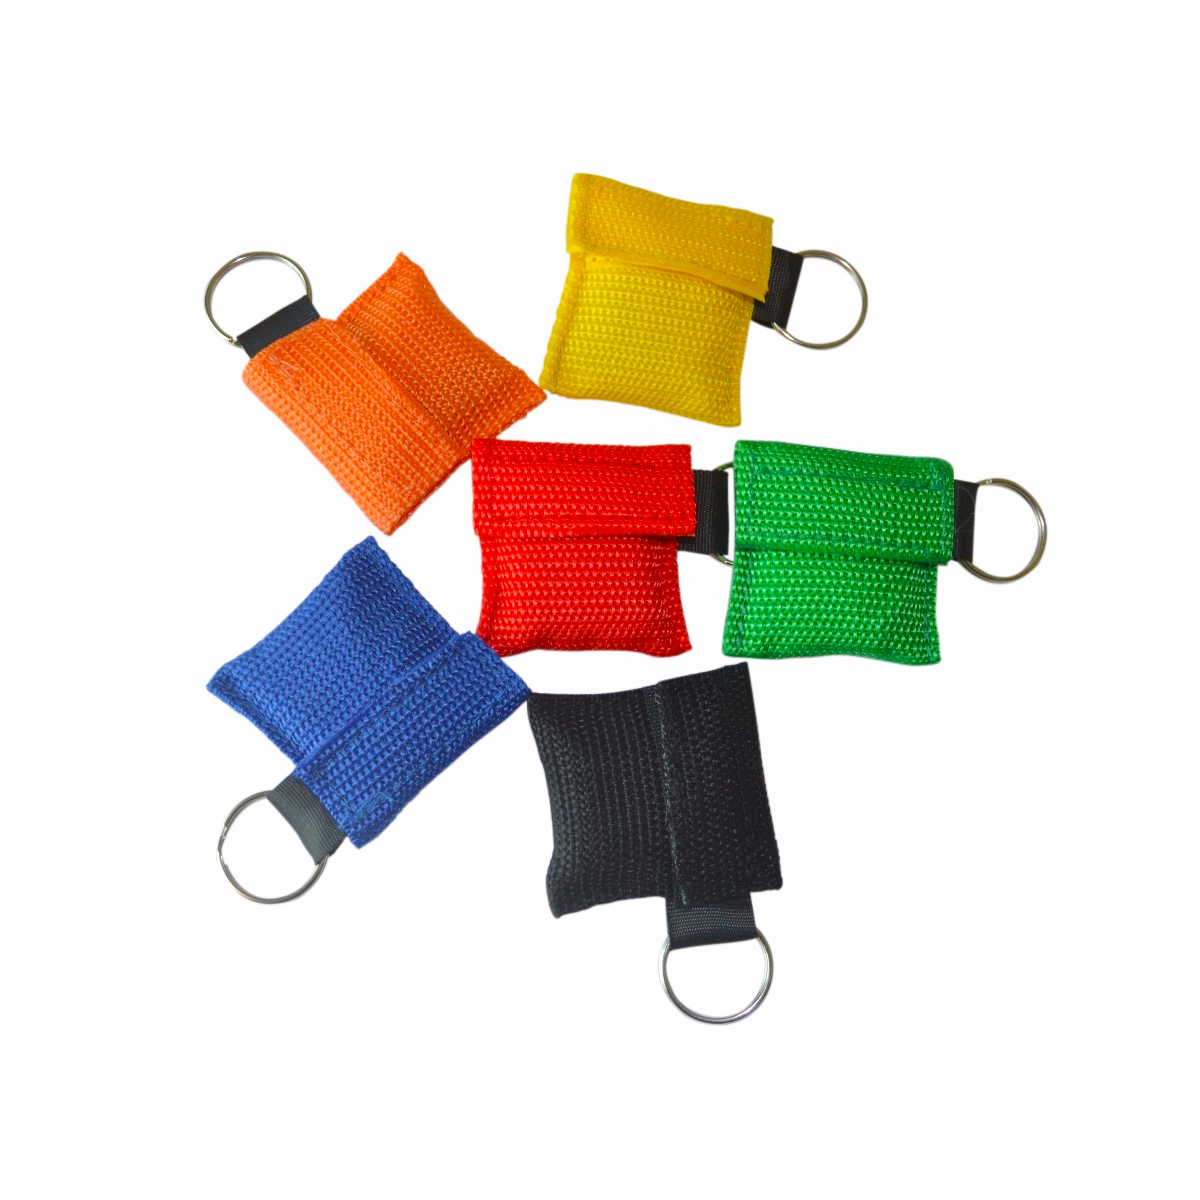 100 PCS /lots NEW CPR MASK WITH KEYCHAIN CPR FACE SHIELD For Cpr/AED 6 COLORS-in Masks from Beauty & Health